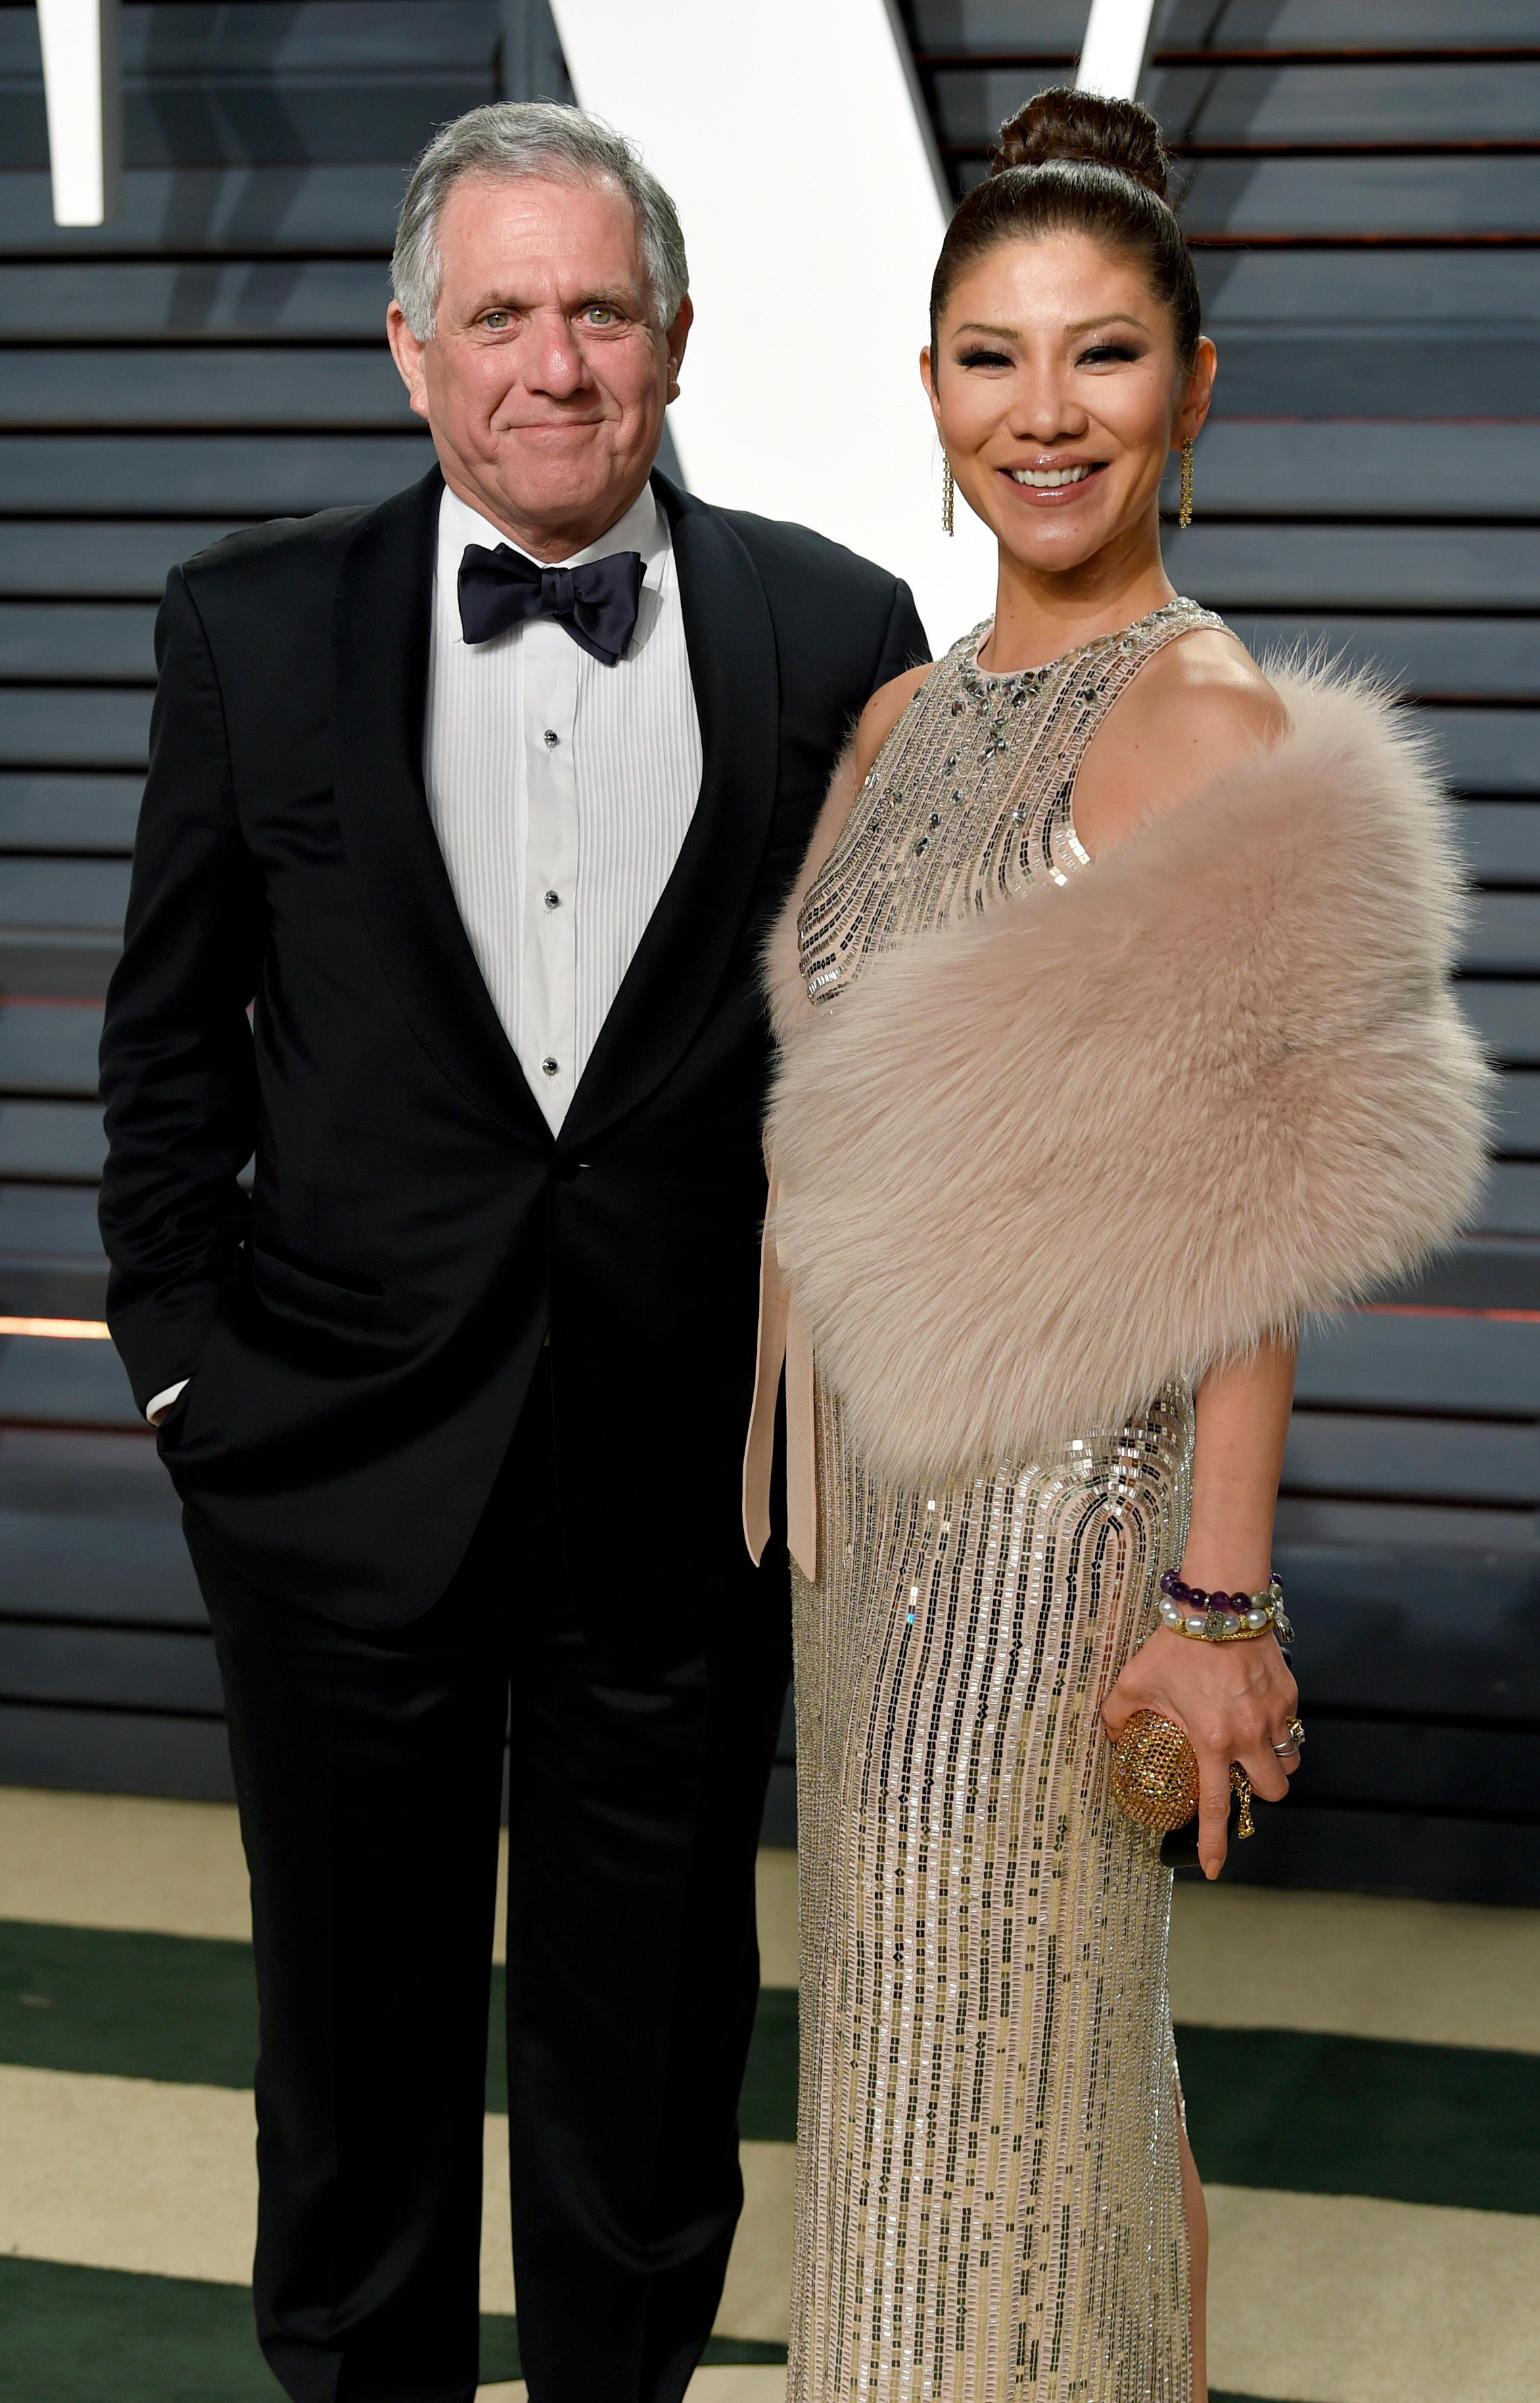 "FILE - In this Feb. 26, 2017 file photo, Les Moonves, left, and Julie Chen arrive at the Vanity Fair Oscar Party in Beverly Hills, Calif. Chen was absent from her talk CBS show, ""The Talk"" a day after a new round of sexual misconduct allegations against Moonves brought the departure of the CBS chief executive. In what was supposed to be a celebratory season premiere Monday, Sept. 10, 2018, the show's four other panelists walked out somberly without Chen, who acts as host and moderator. Sharon Osbourne choked back tears as she announced Chen would be taking time off to be with her family, and expressed support for her co-star and friend. (Photo by Evan Agostini/Invision/AP, File)"